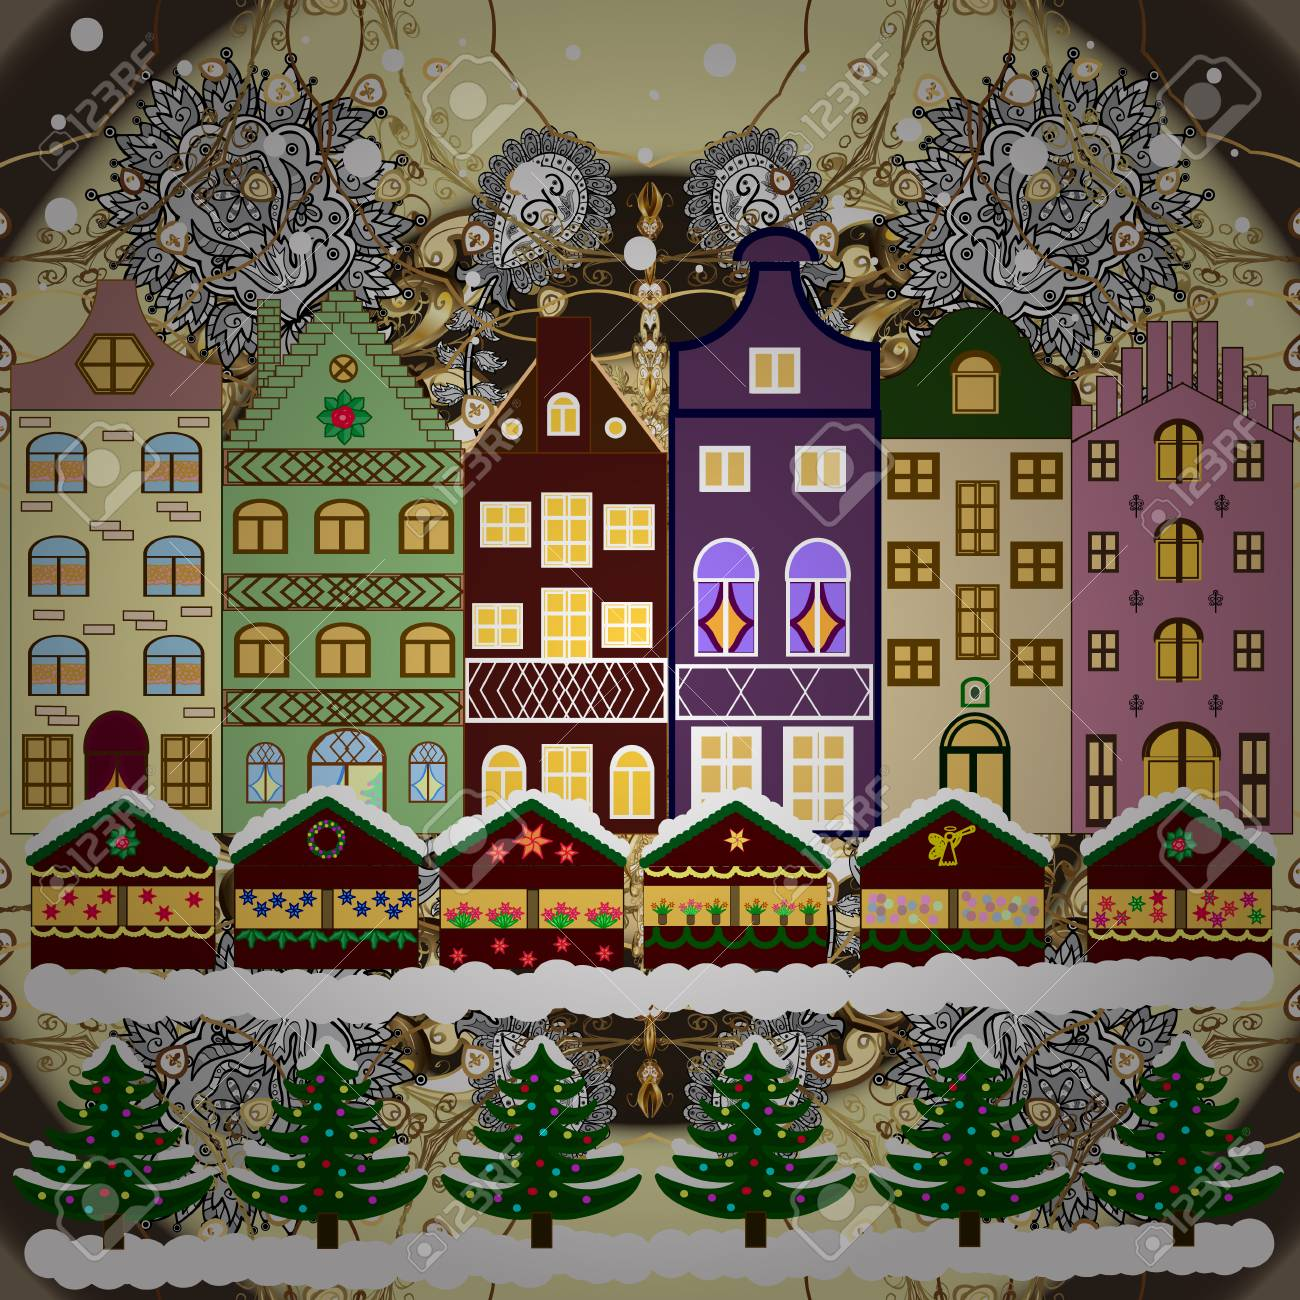 Christmas Houses Village.Village Winter Landscape With Snow Cove Houses And Christmas